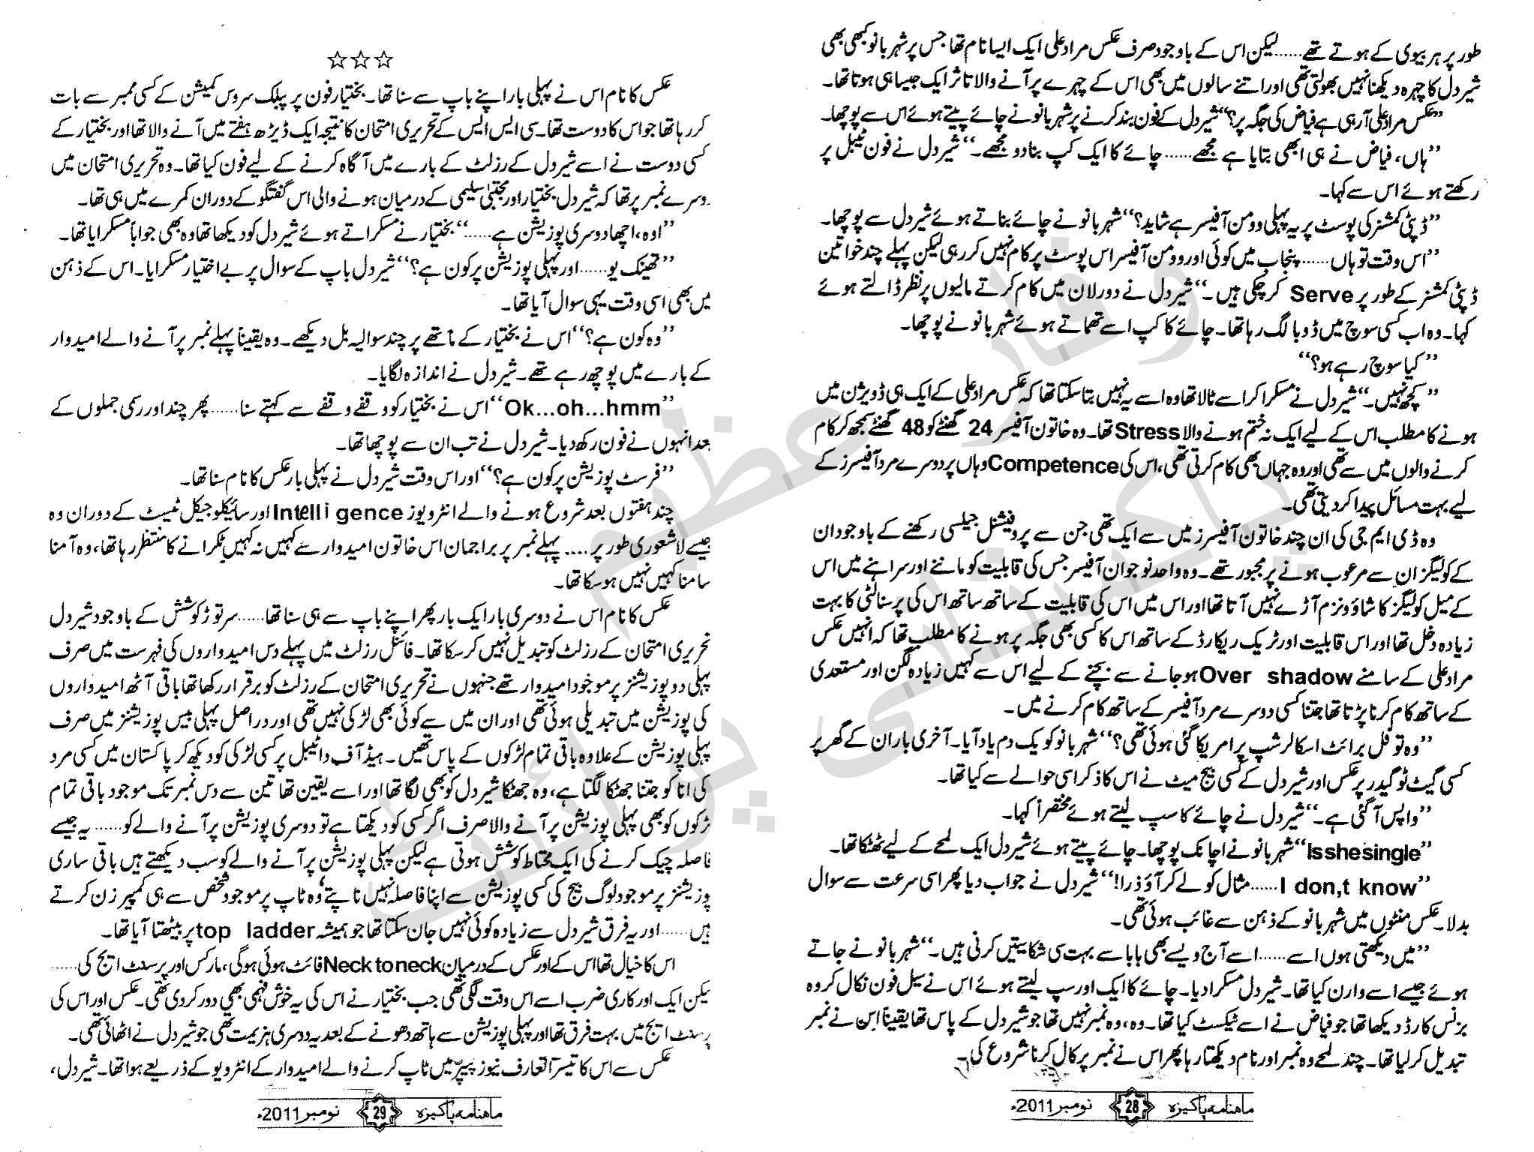 READ ONLINE Part 1 click on the image for a better result.